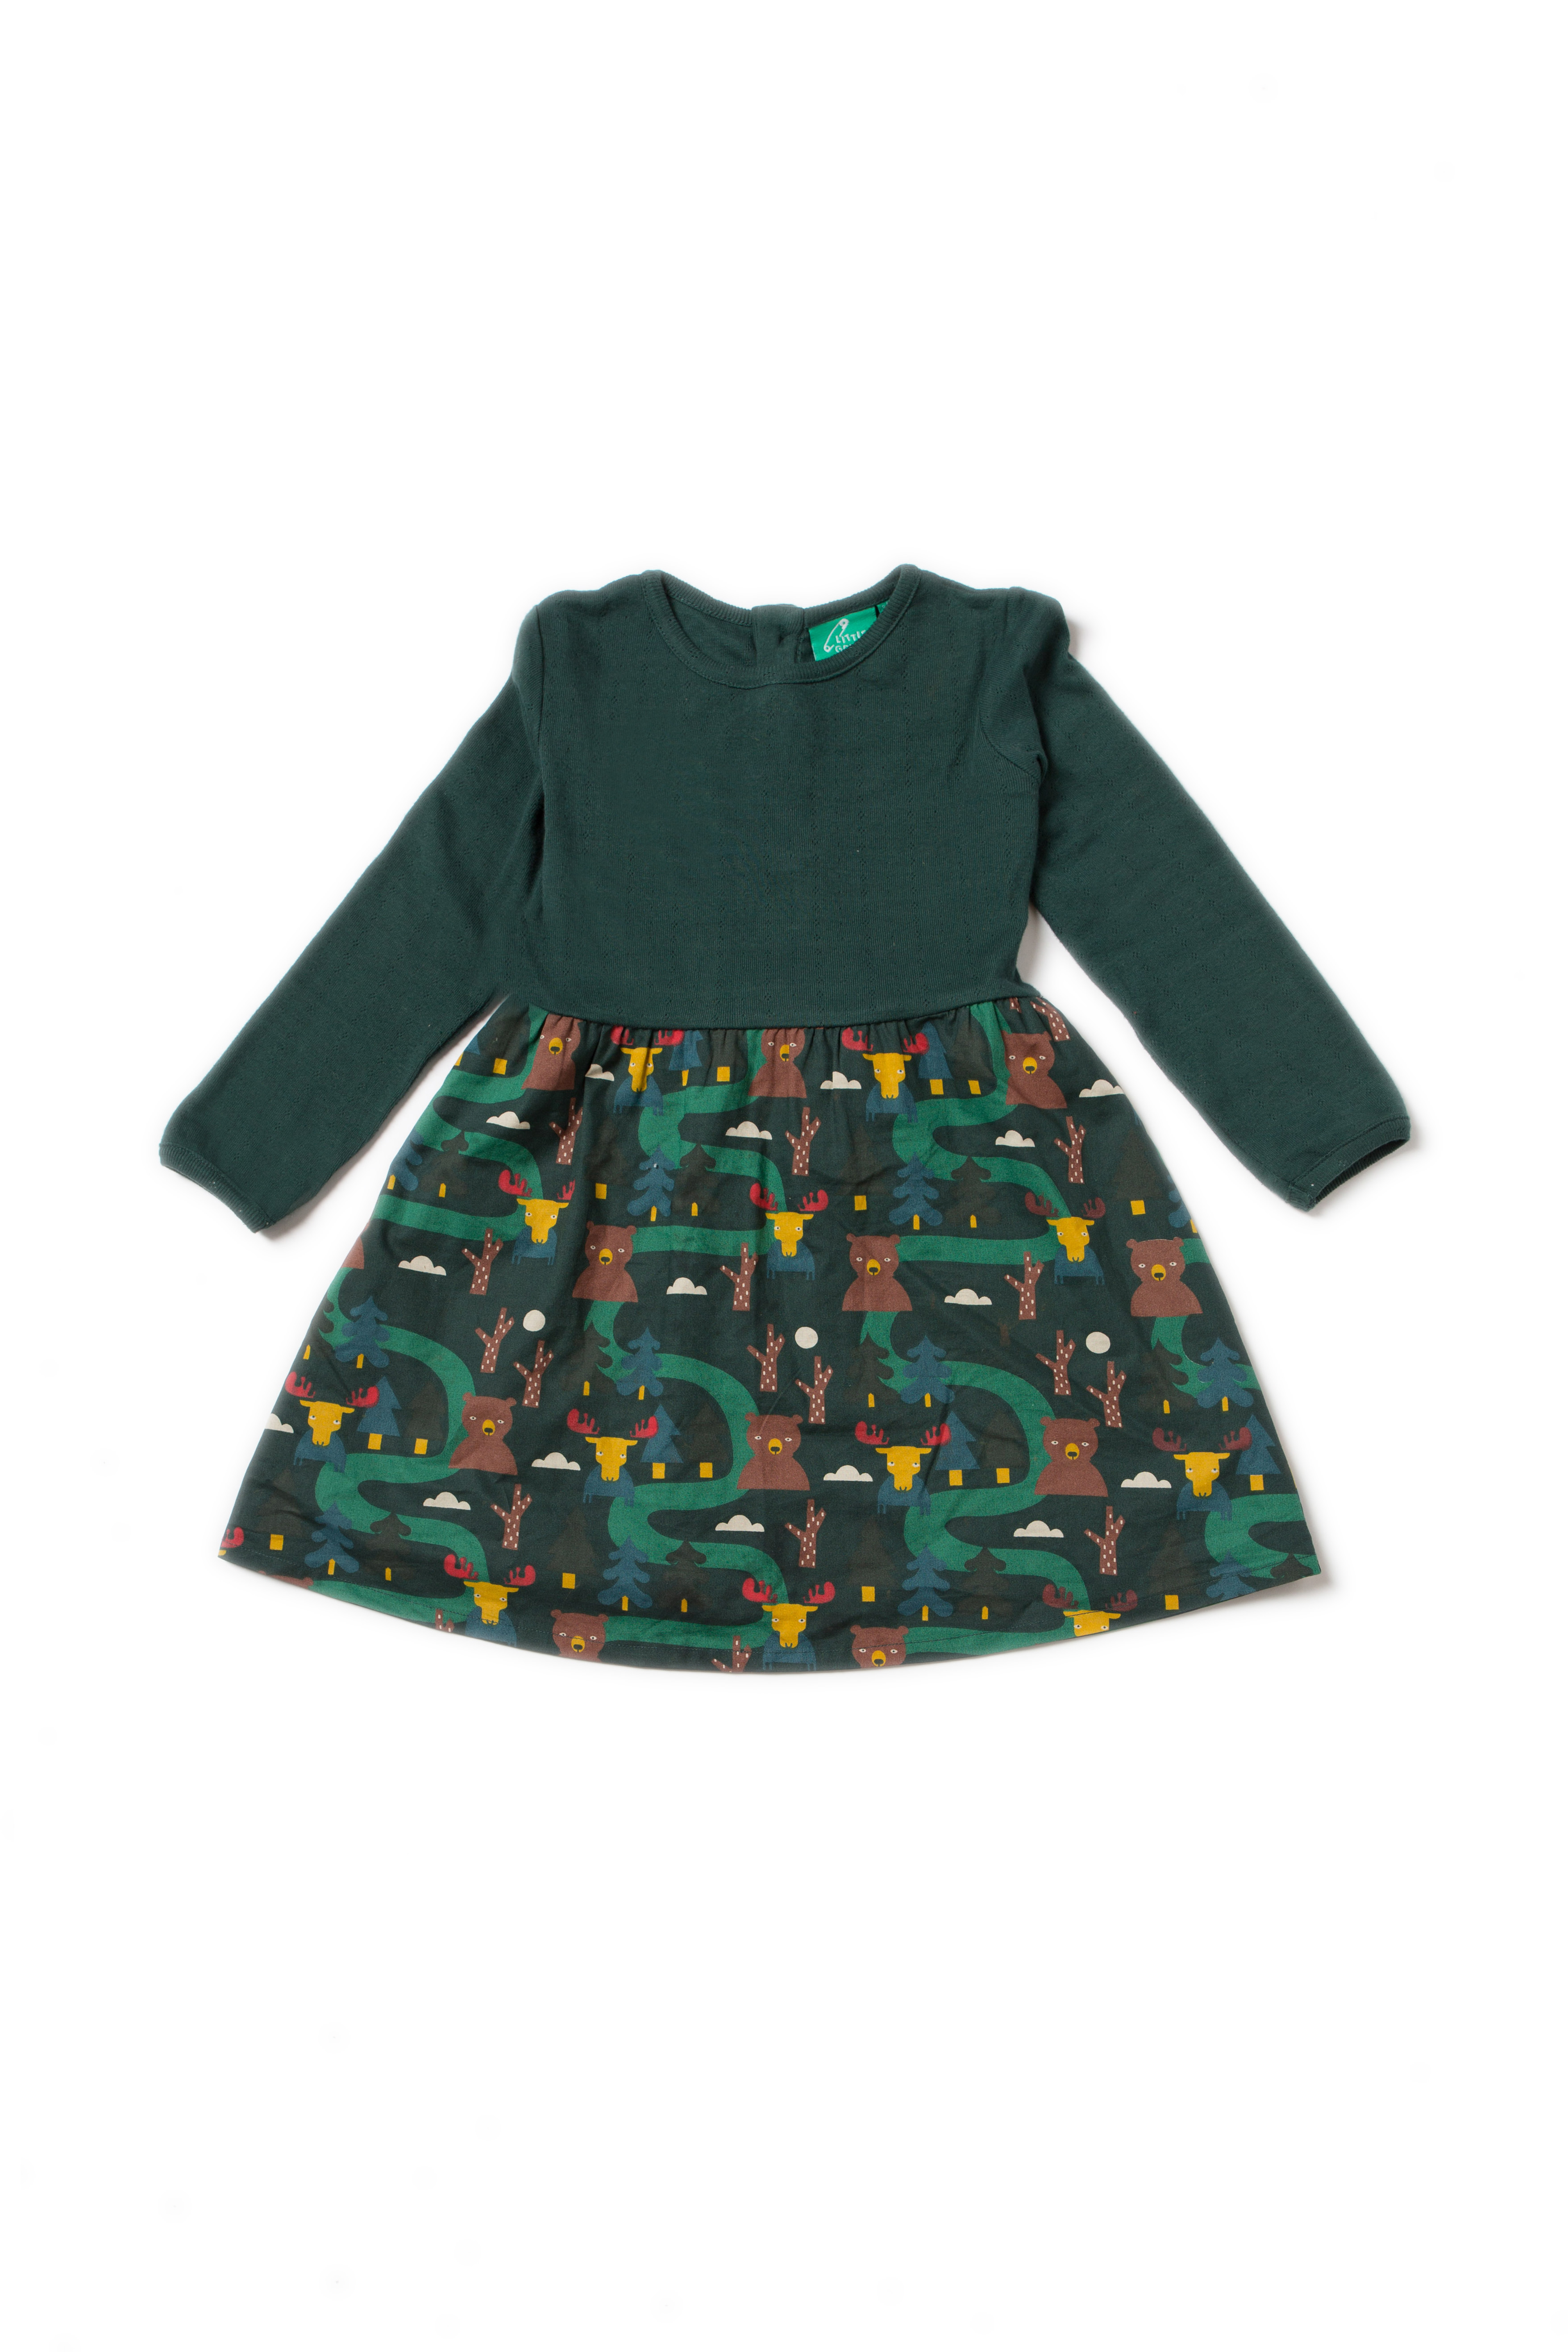 Little Green Radicals - Nordic forest little twirler dress